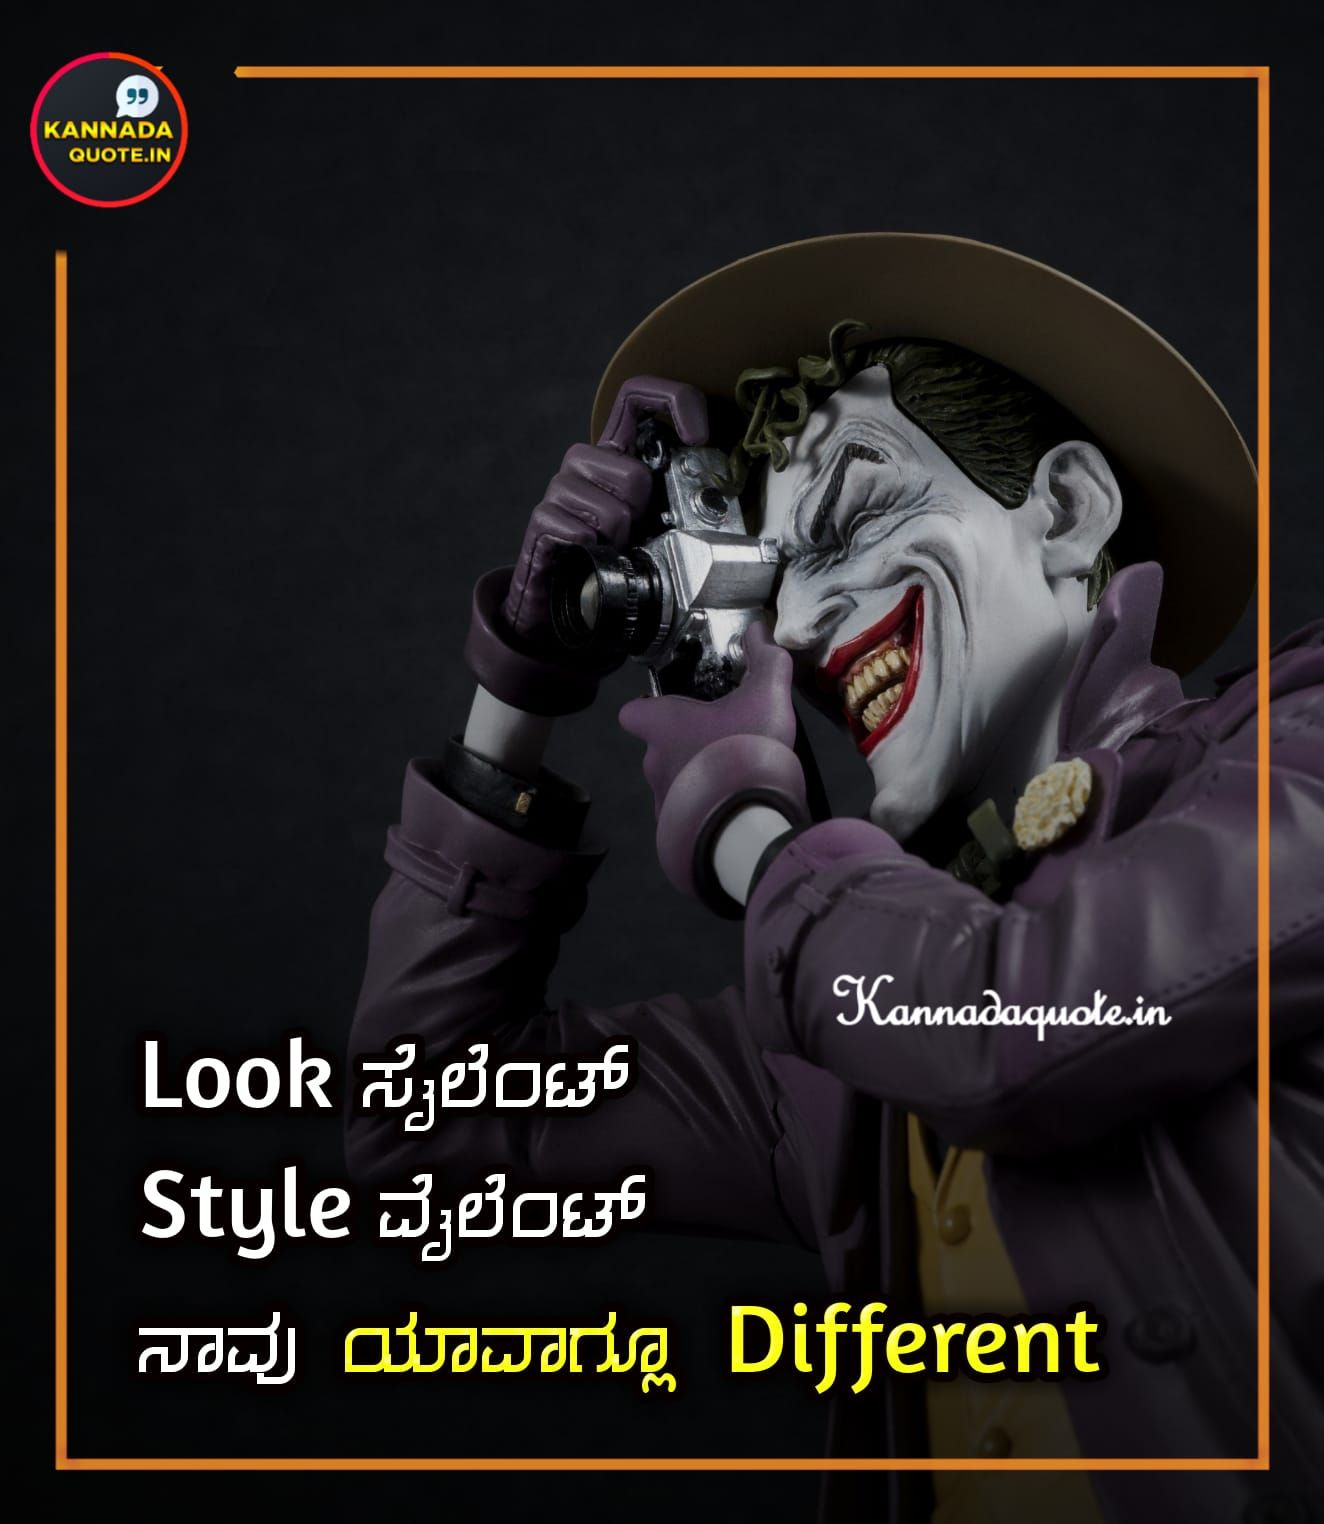 Kannadaattitudequotes Attitude Quotes Inspirational Quotes Motivation Motivational Quotes For Life